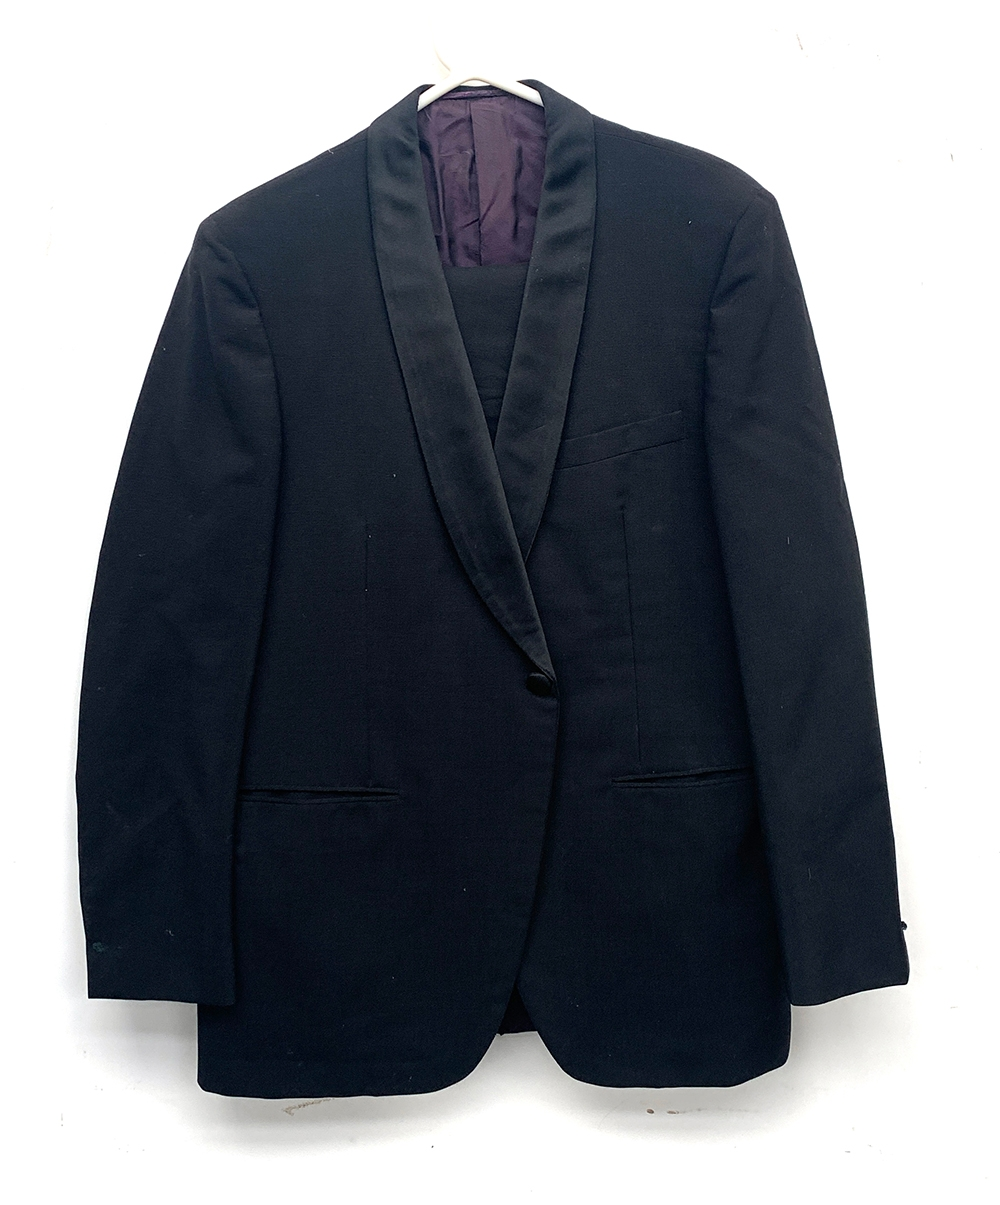 """A gent's single breasted wool pinstripe suit, blue lining silk, size 38"""" chest, the trousers with - Image 3 of 3"""